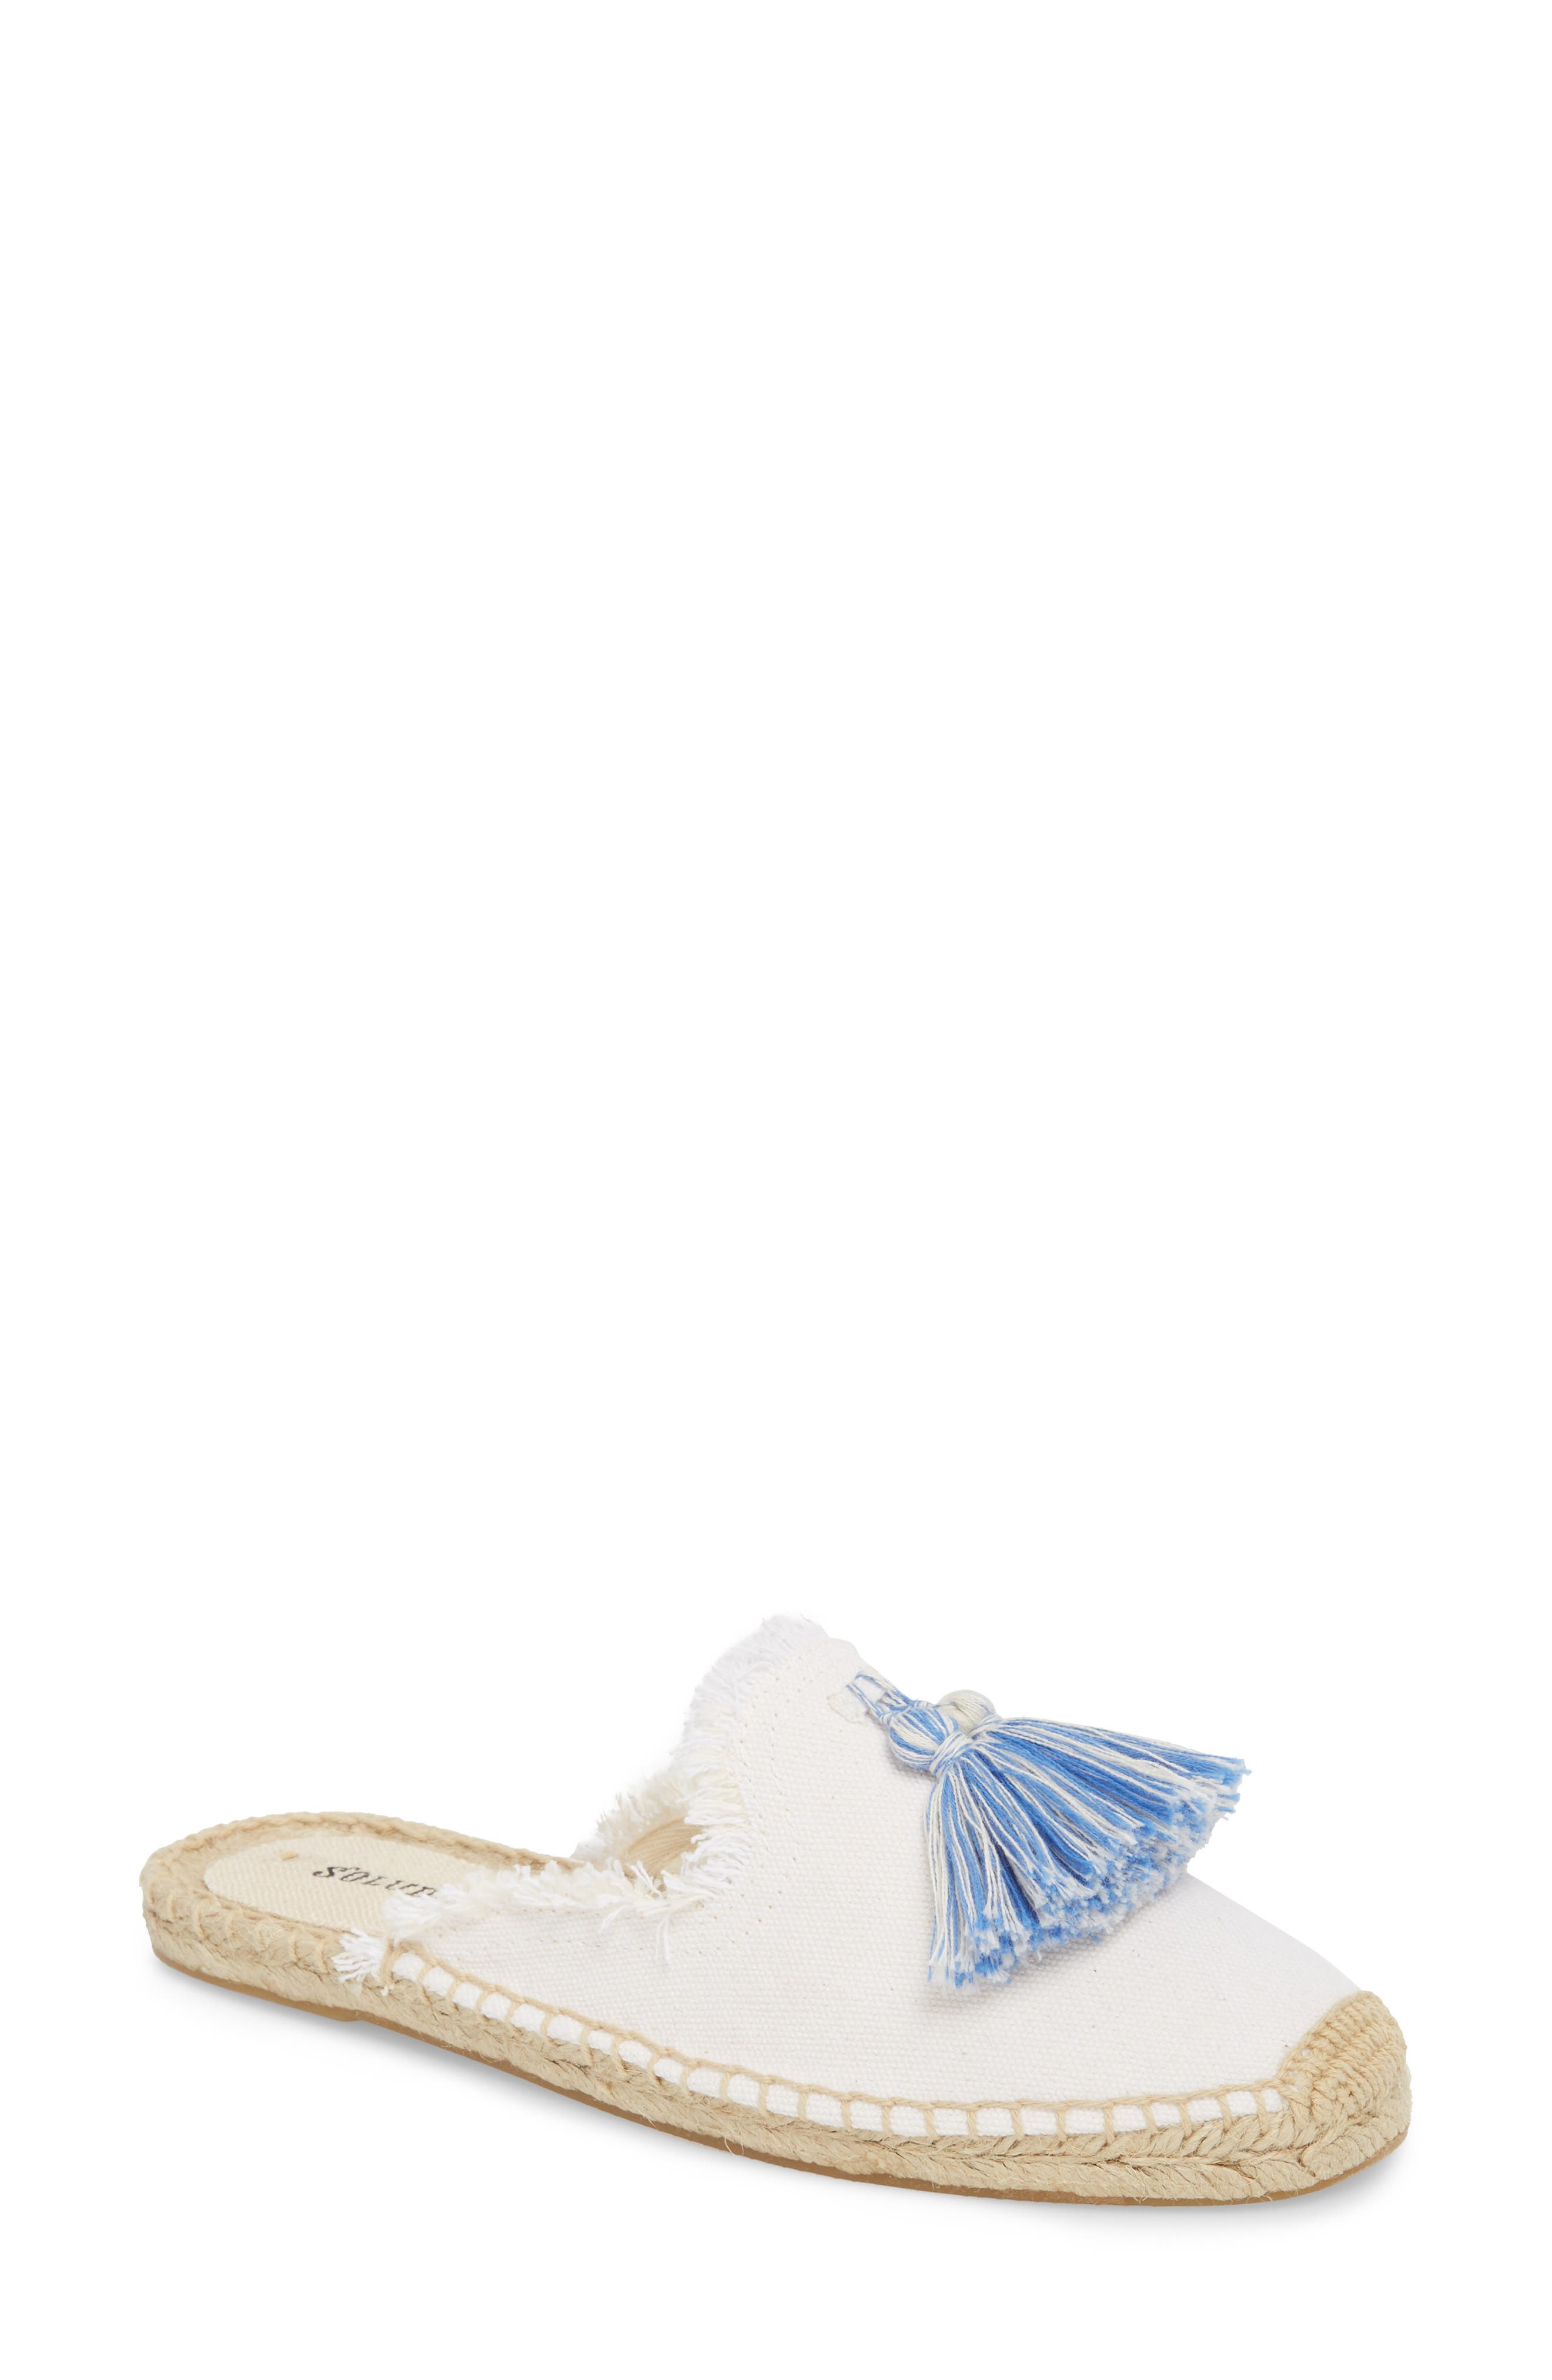 Frayed Tassel Espadrille Loafer Mule,                             Main thumbnail 1, color,                             WHITE